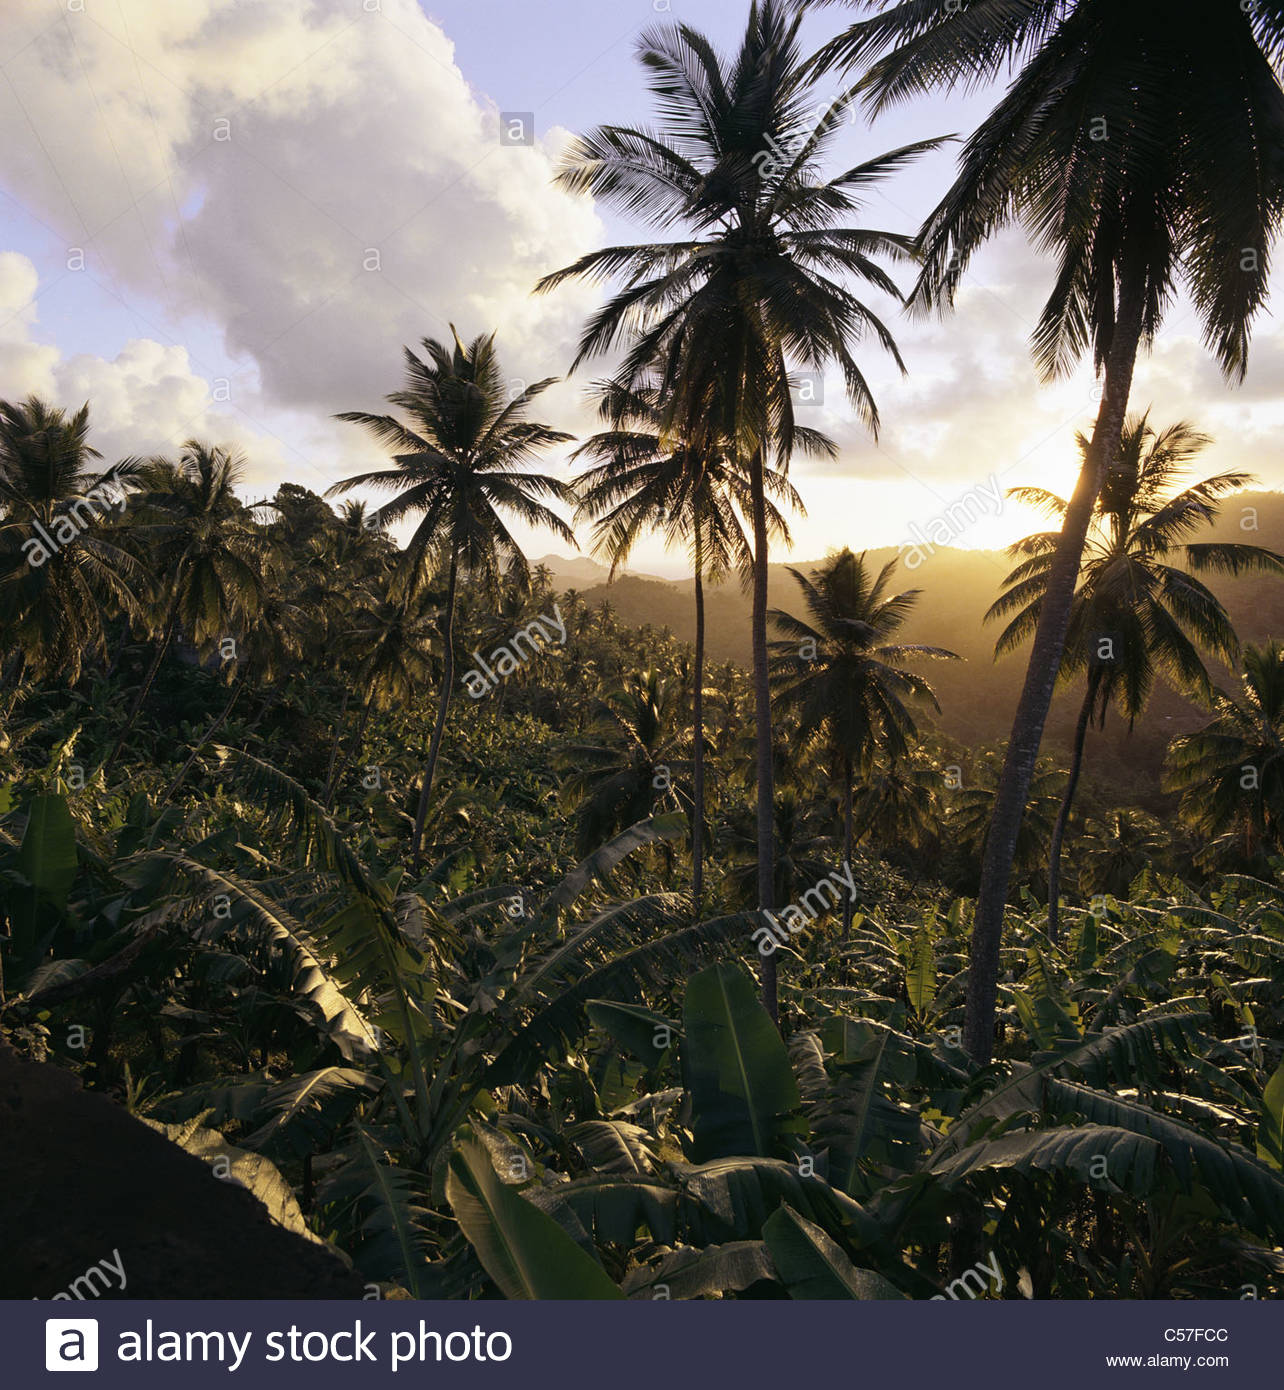 Palm trees in rural landscape - Stock Image